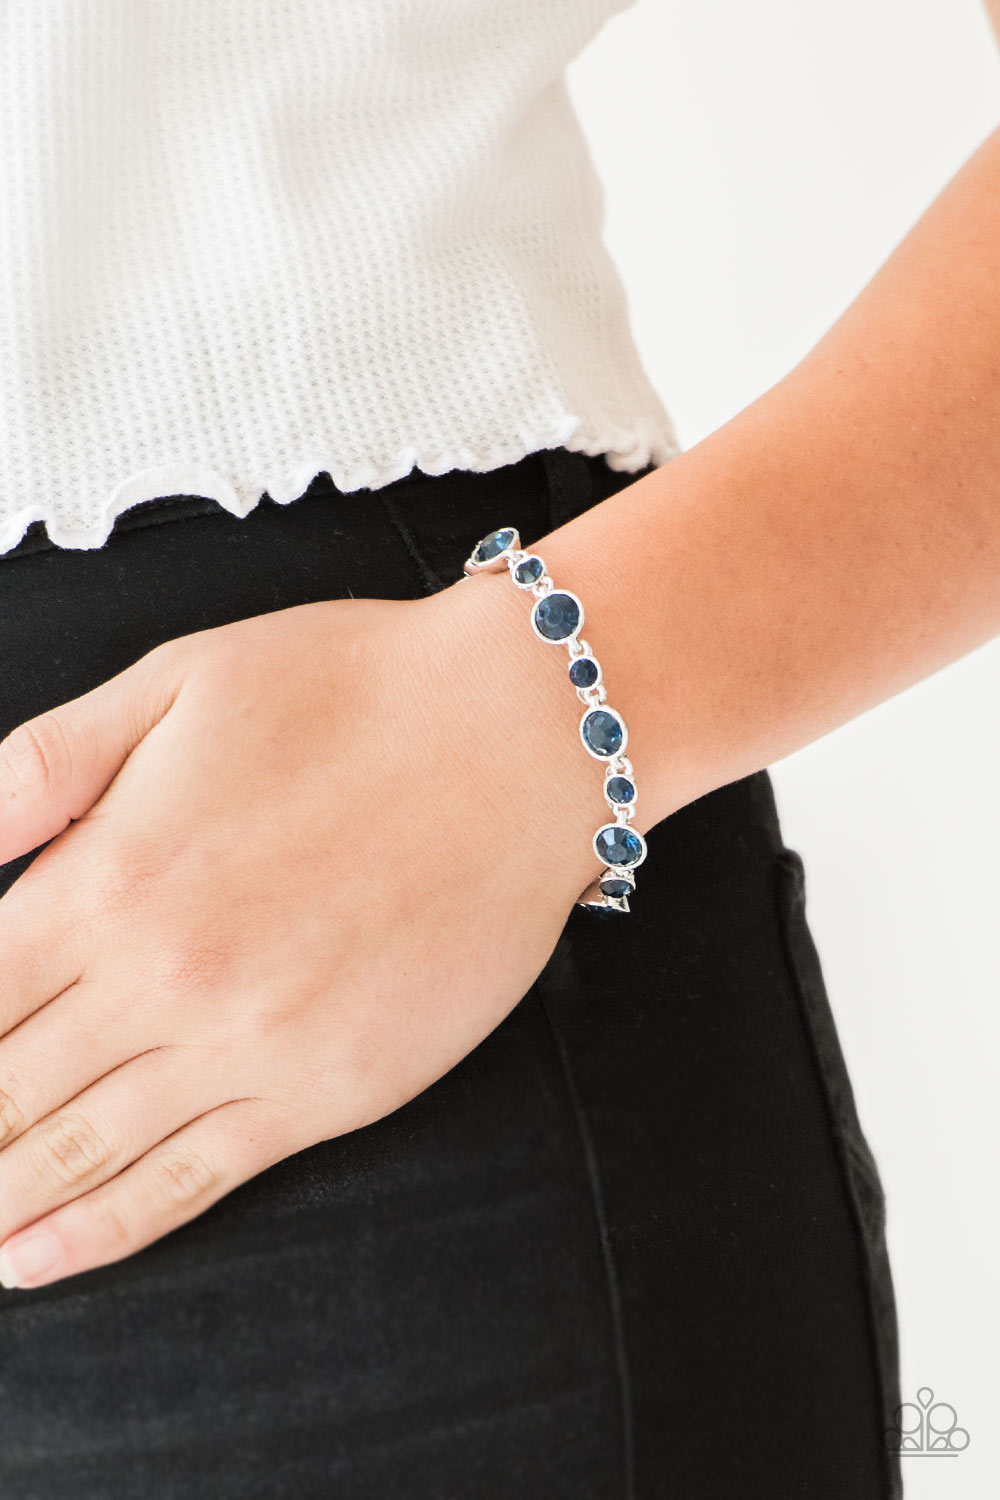 Paparazzi Jewelry & Accessories - Starstruck Sparkle - Blue Bracelet. Bling By Titia Boutique